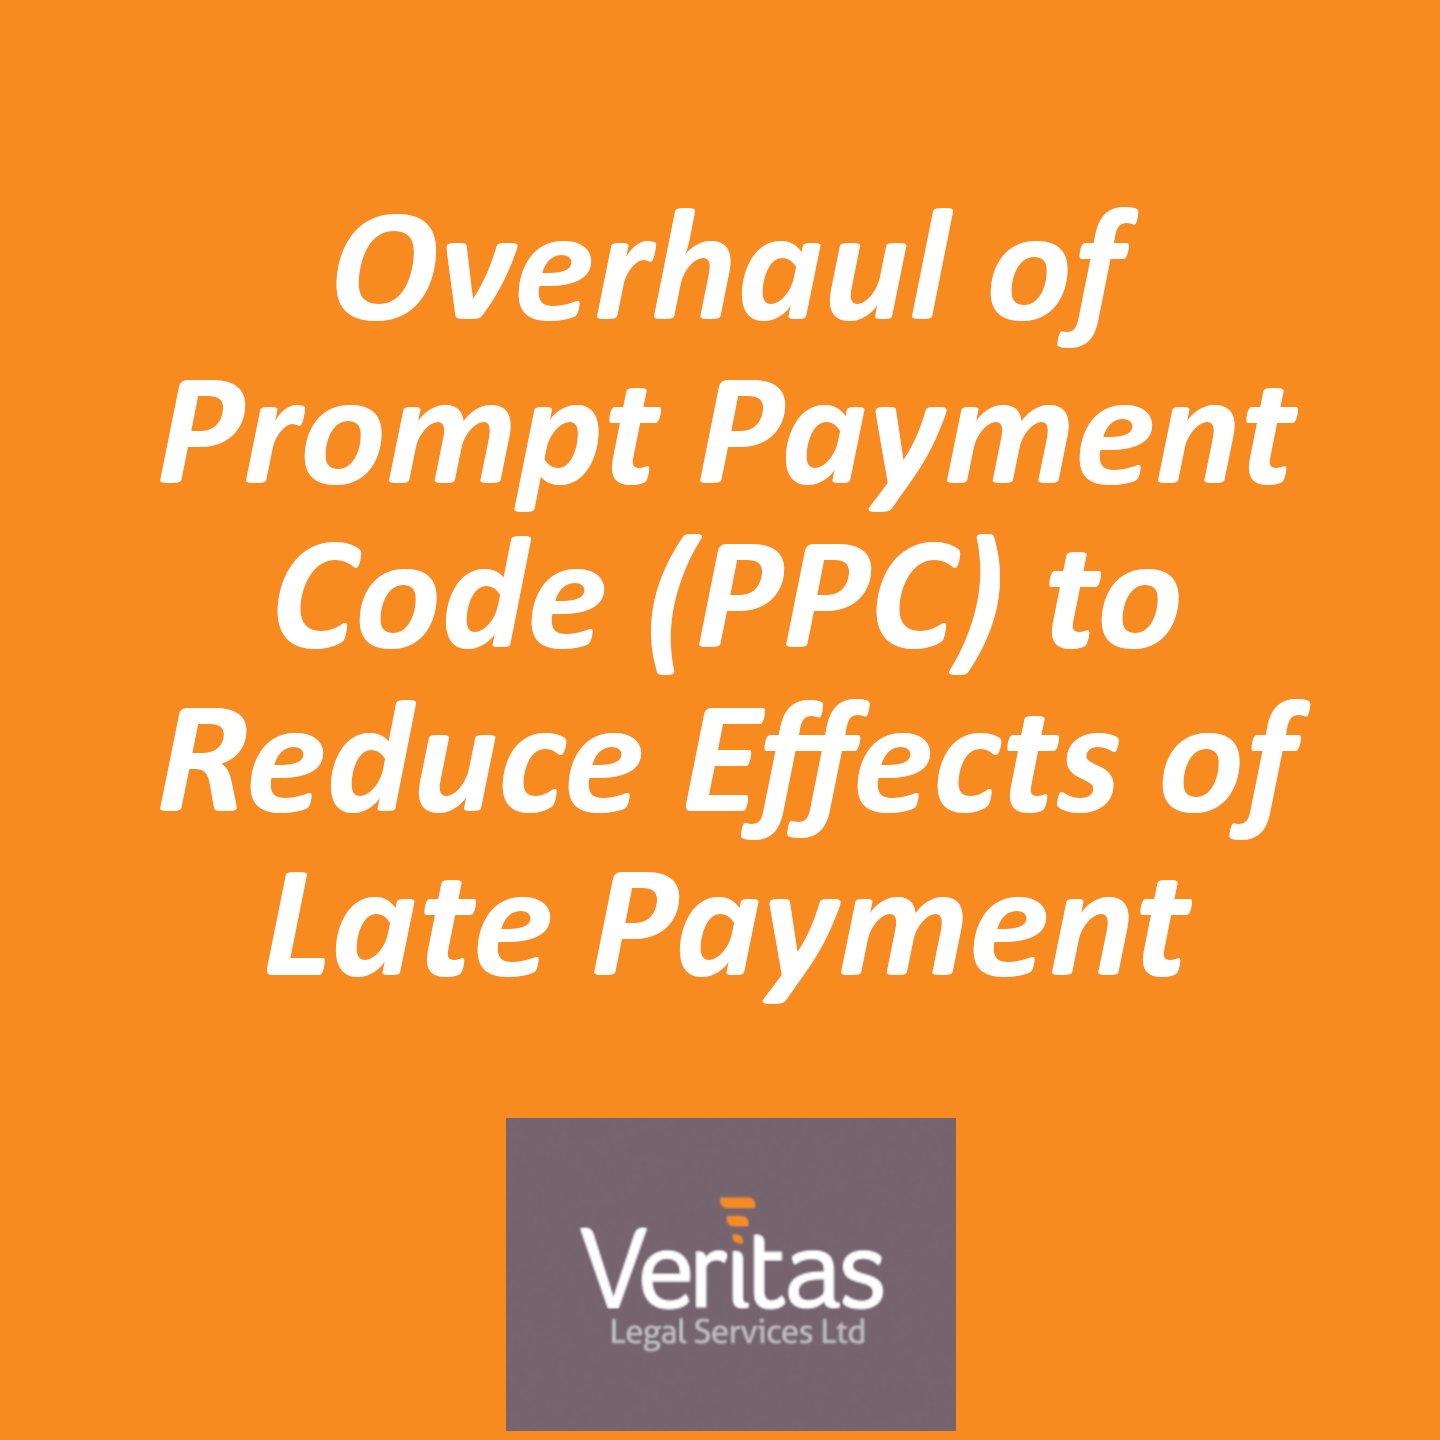 Overhaul of Prompt Payment Code (PPC) to Reduce Effects of Late Payment